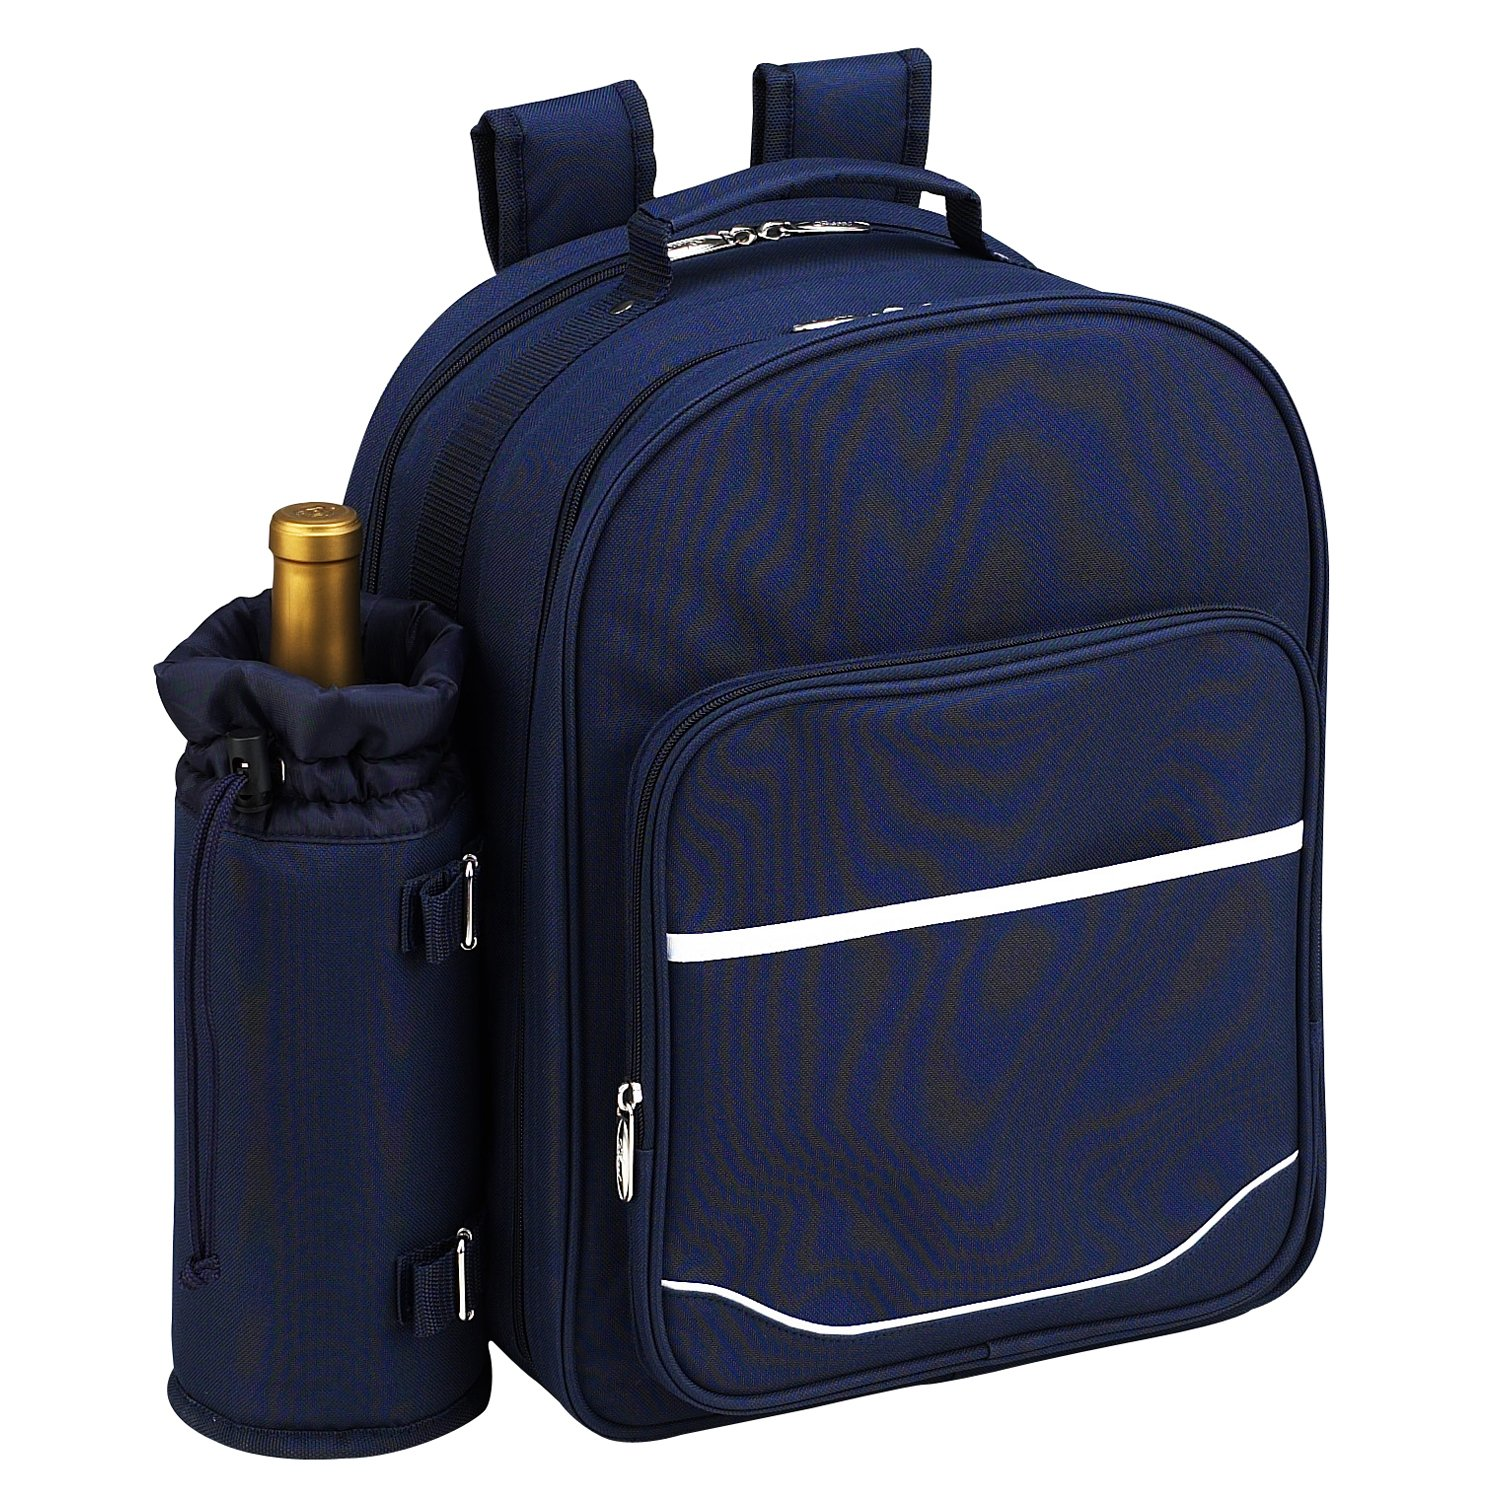 Picnic at Ascot - Deluxe Equipped 4 Person Picnic Backpack with Cooler & Insulated Wine Holder - Navy by Picnic at Ascot